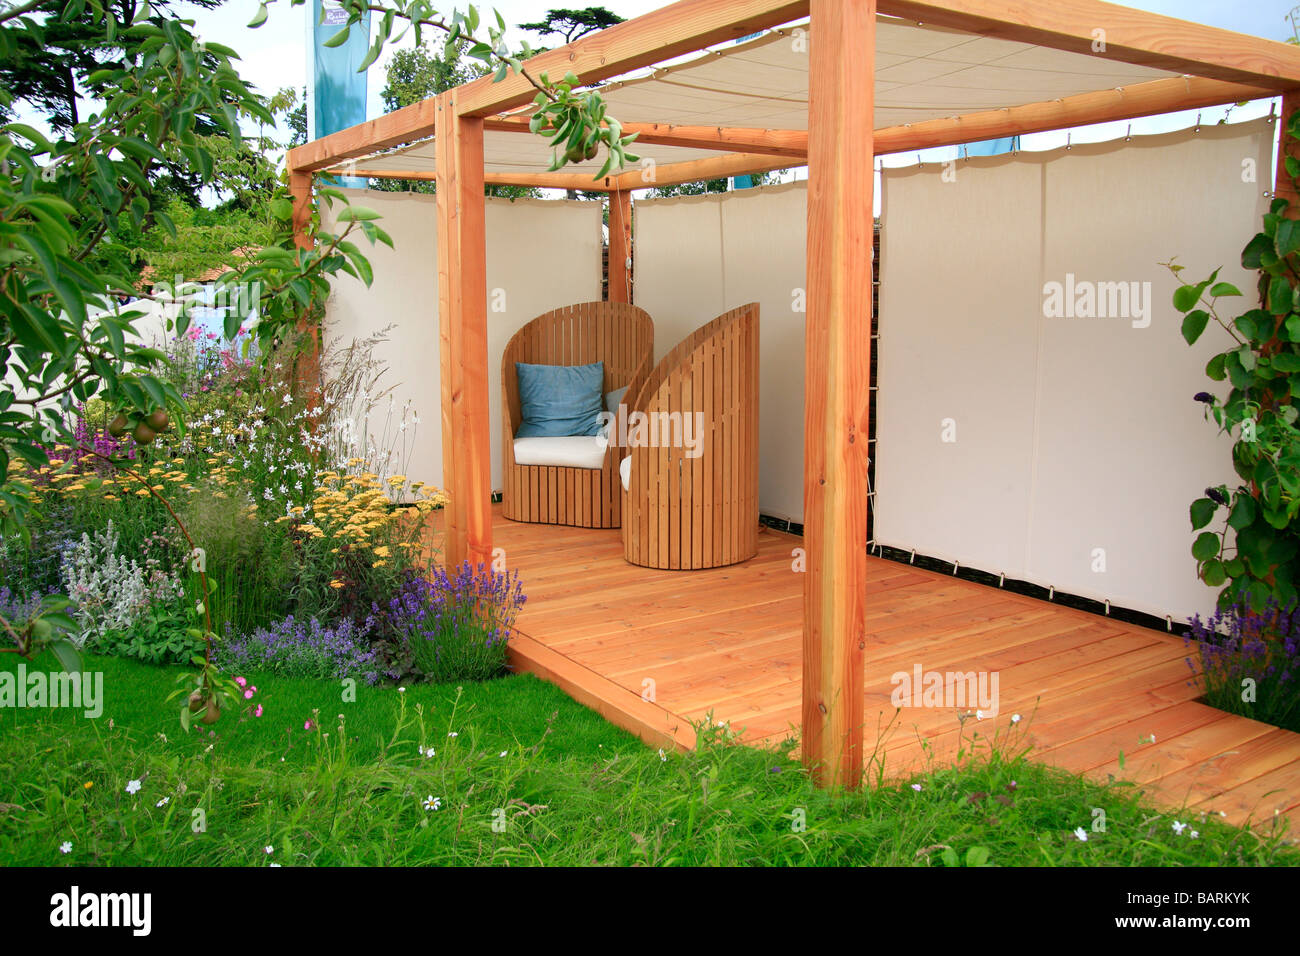 pergola chairs stockfotos pergola chairs bilder alamy. Black Bedroom Furniture Sets. Home Design Ideas